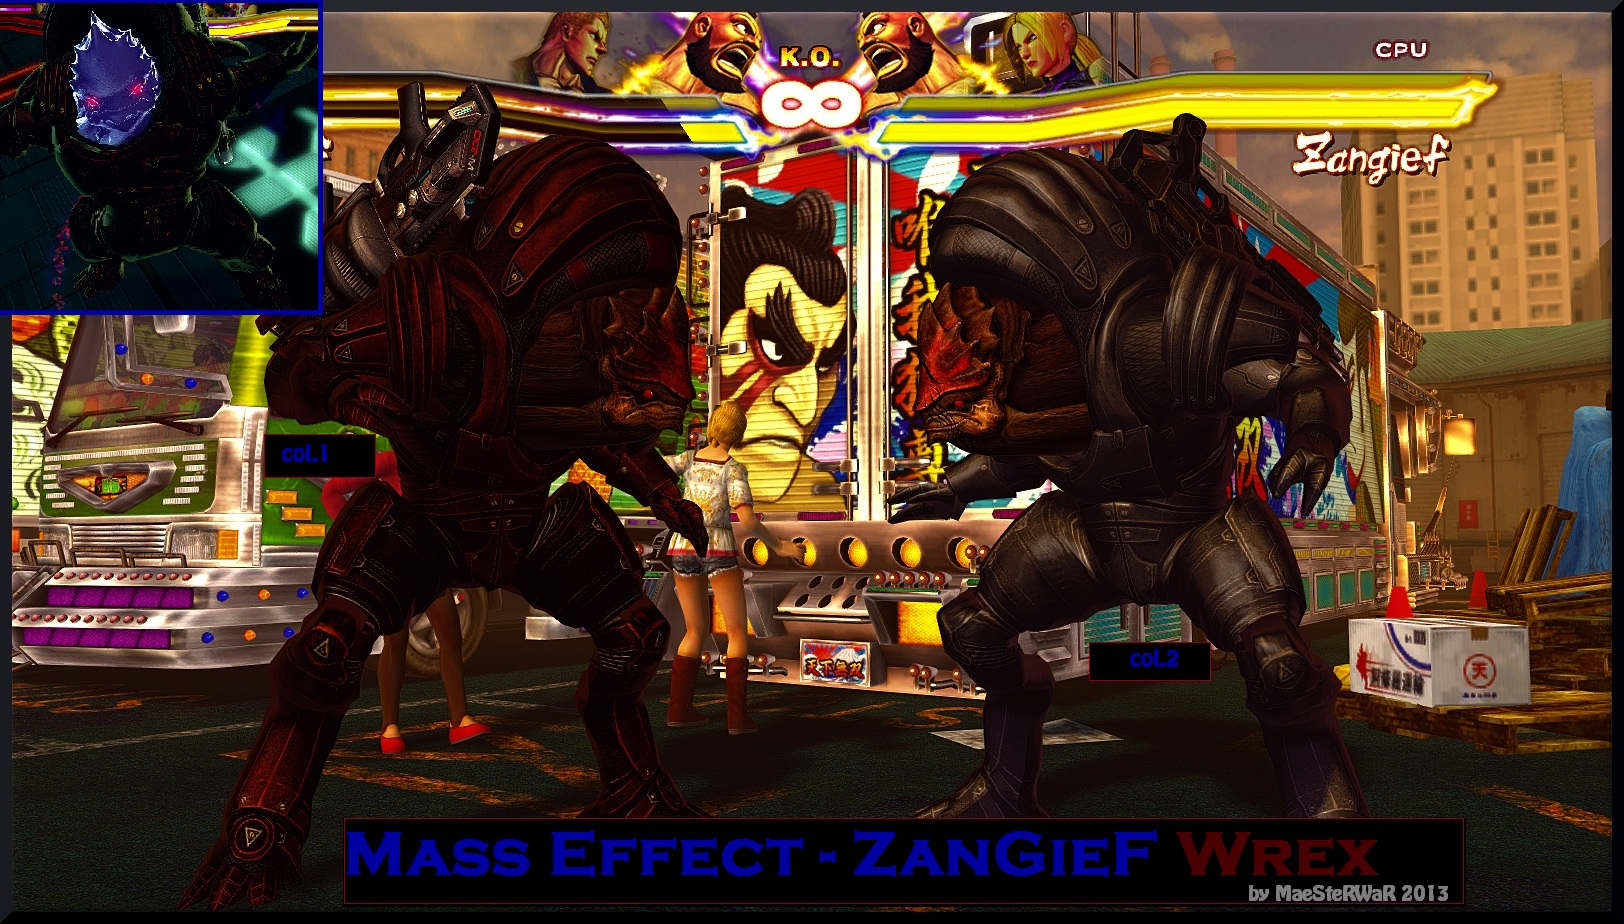 Zangief As Urdnot Wrex SFXTekken by MaesterLee